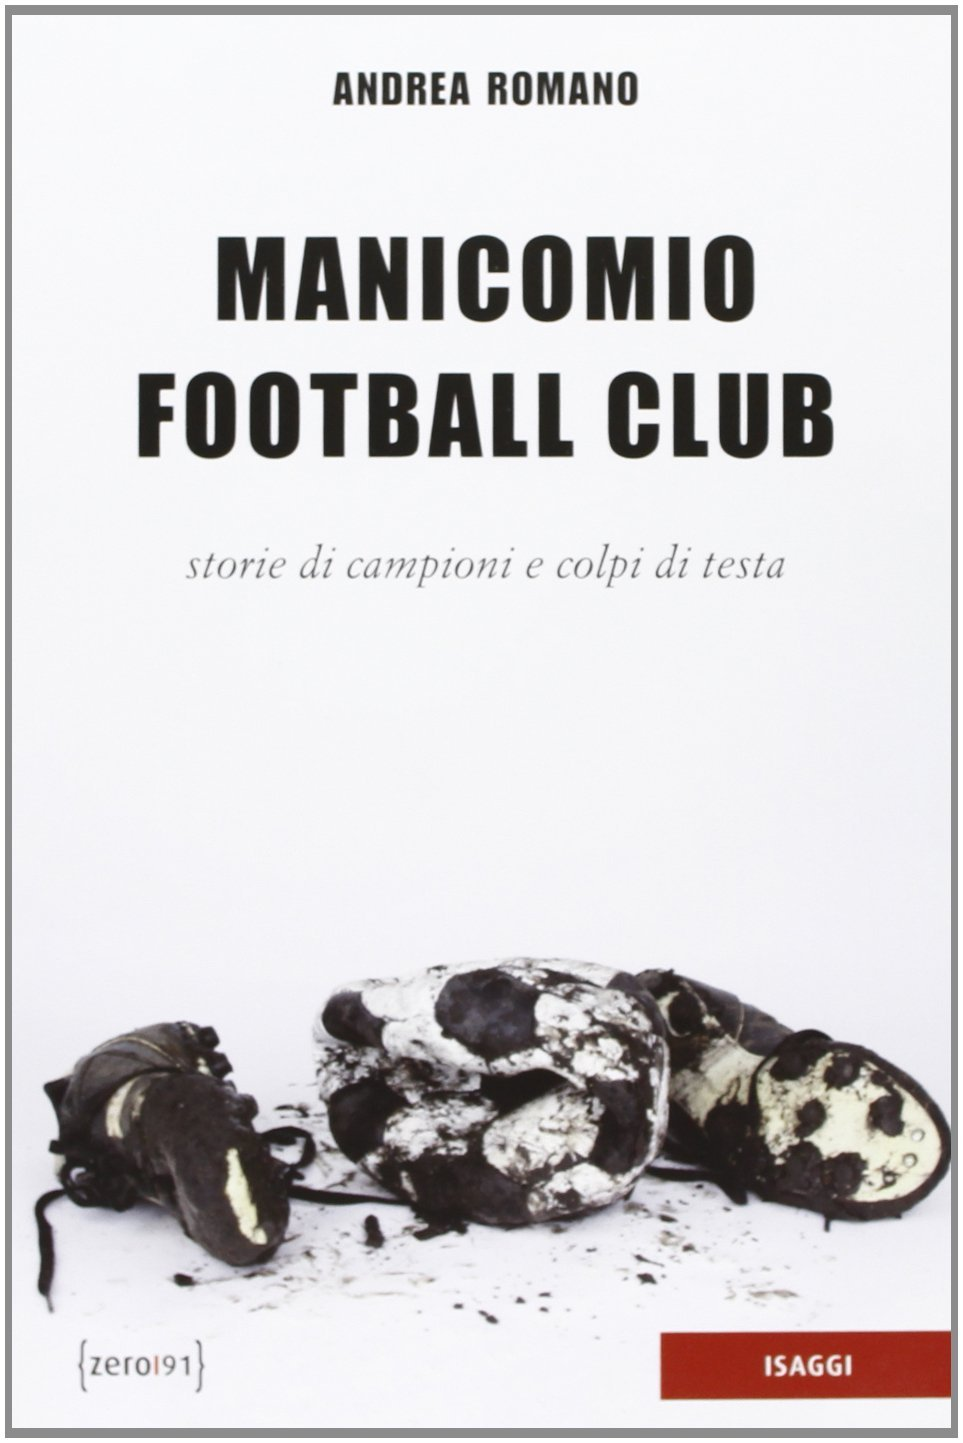 Andrea Romano Manicomio Football Club.